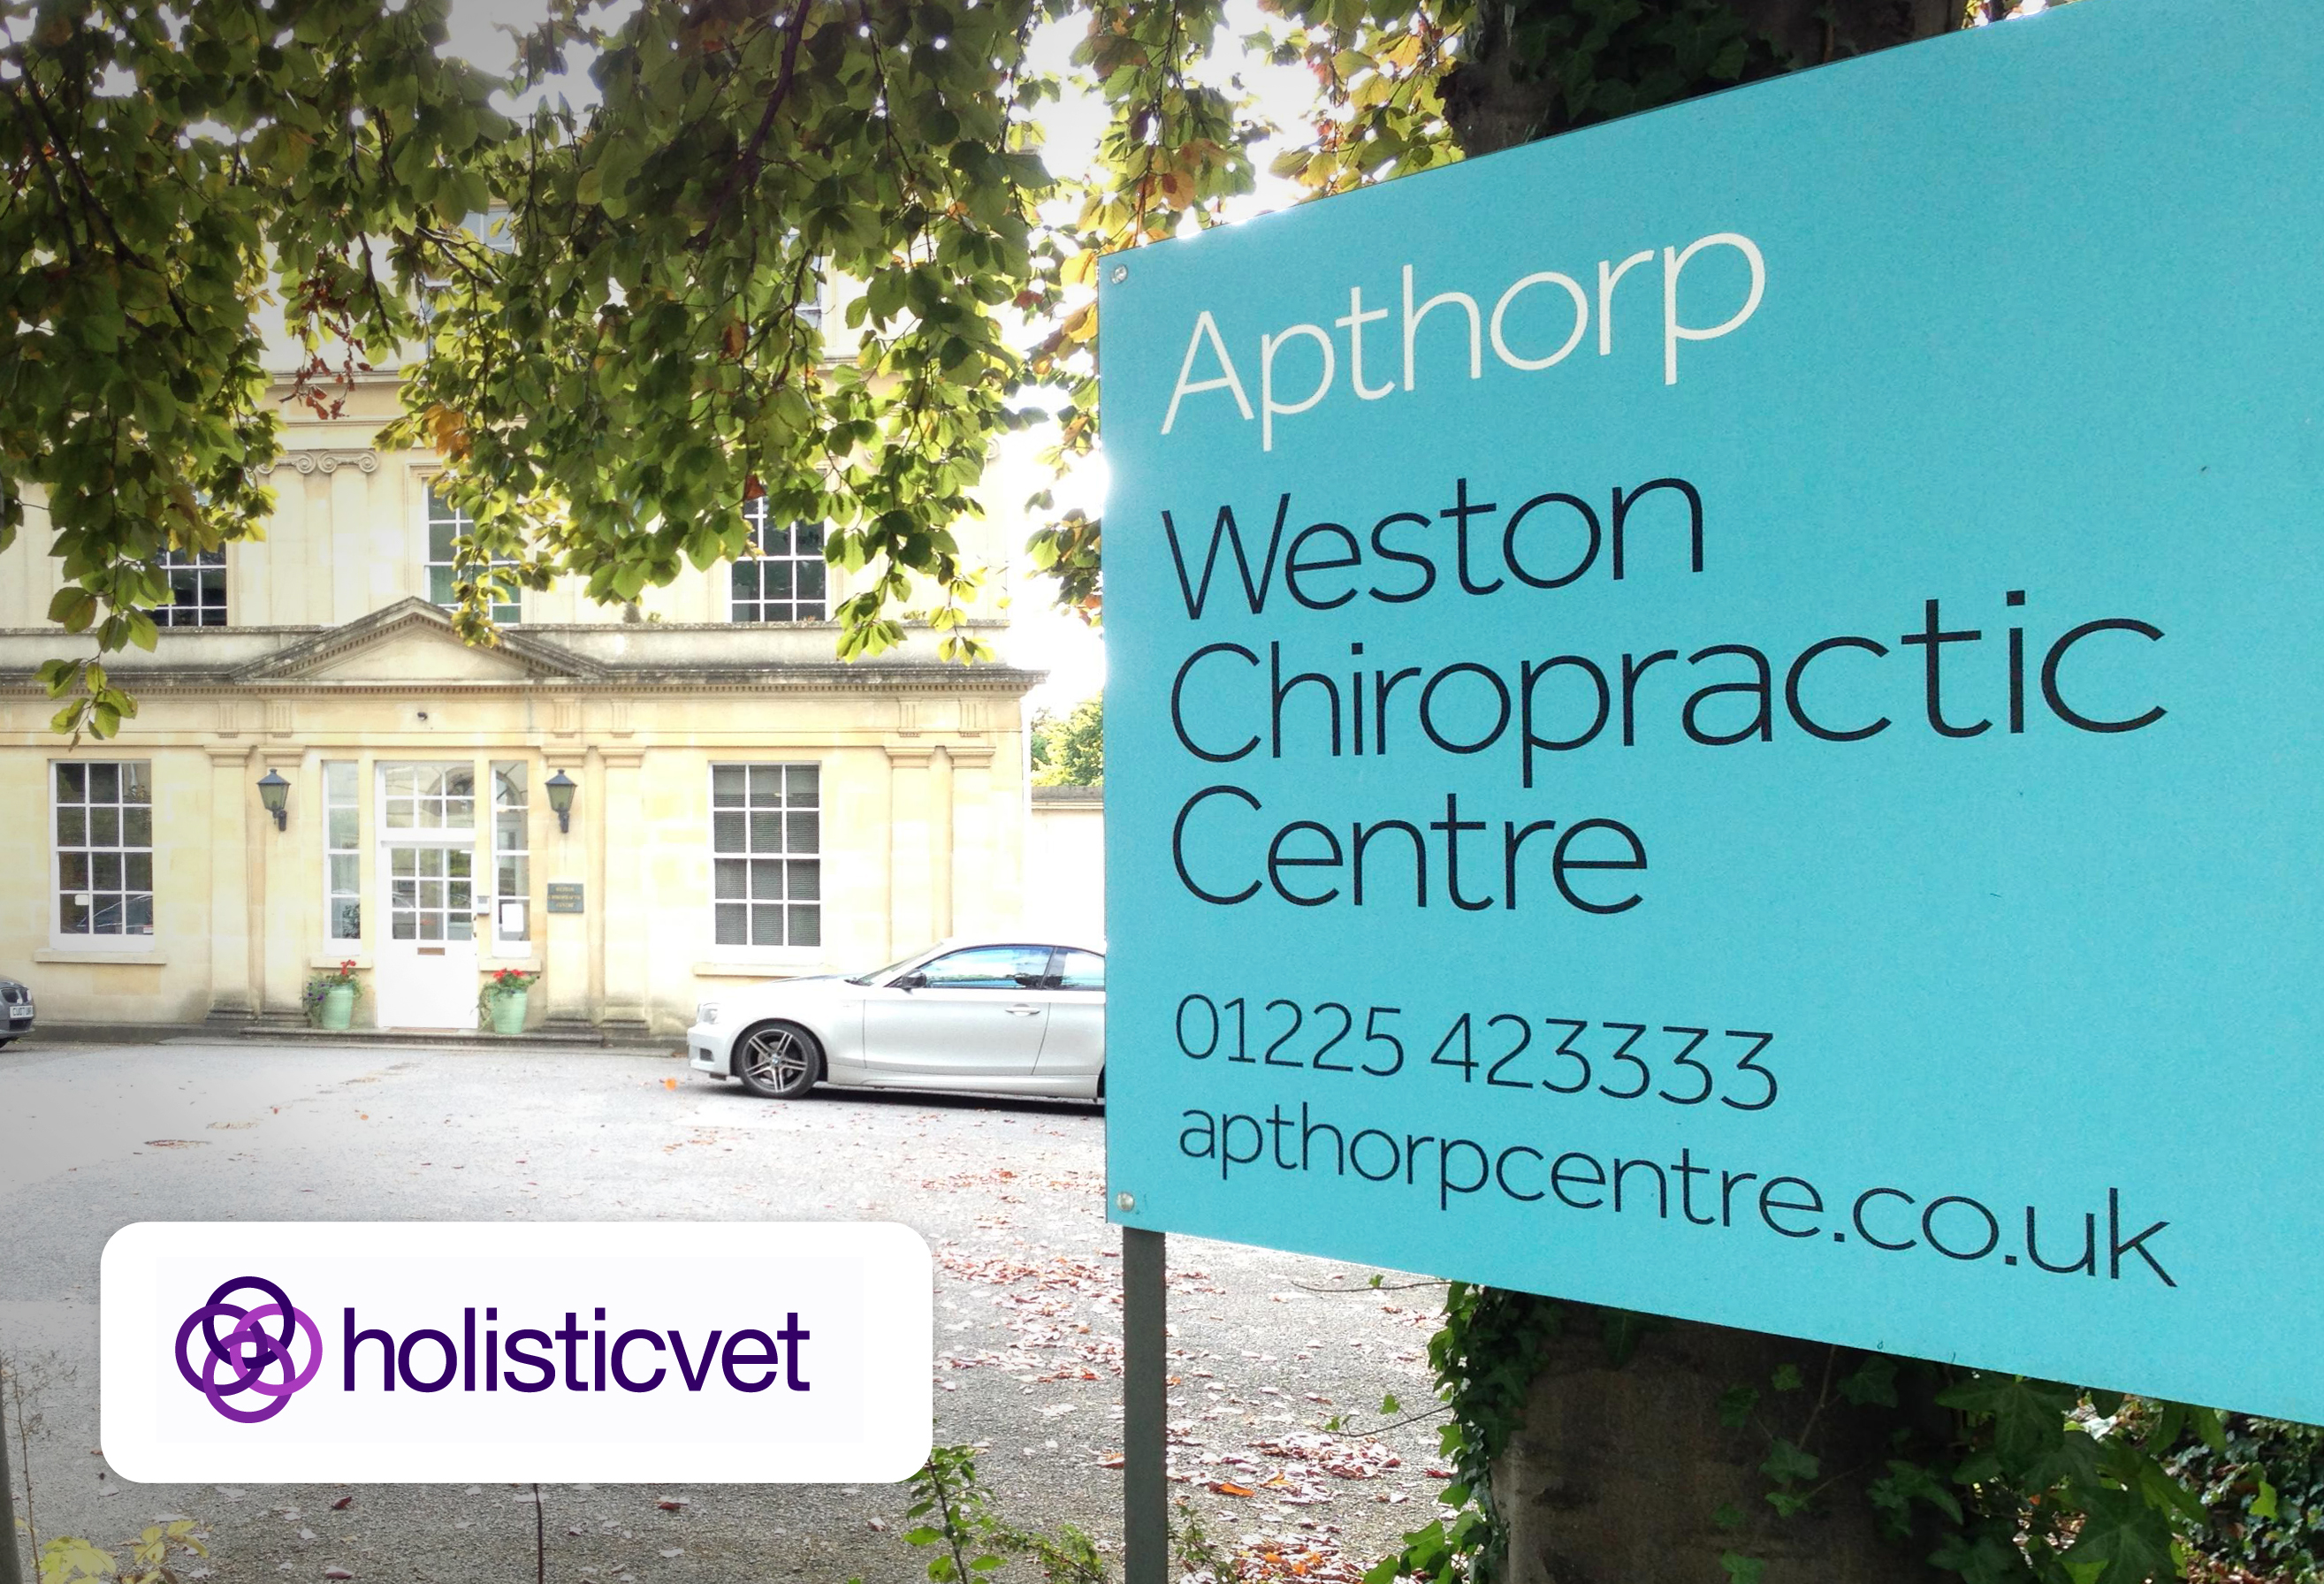 Holisticvet is based at the Apthorp Centre